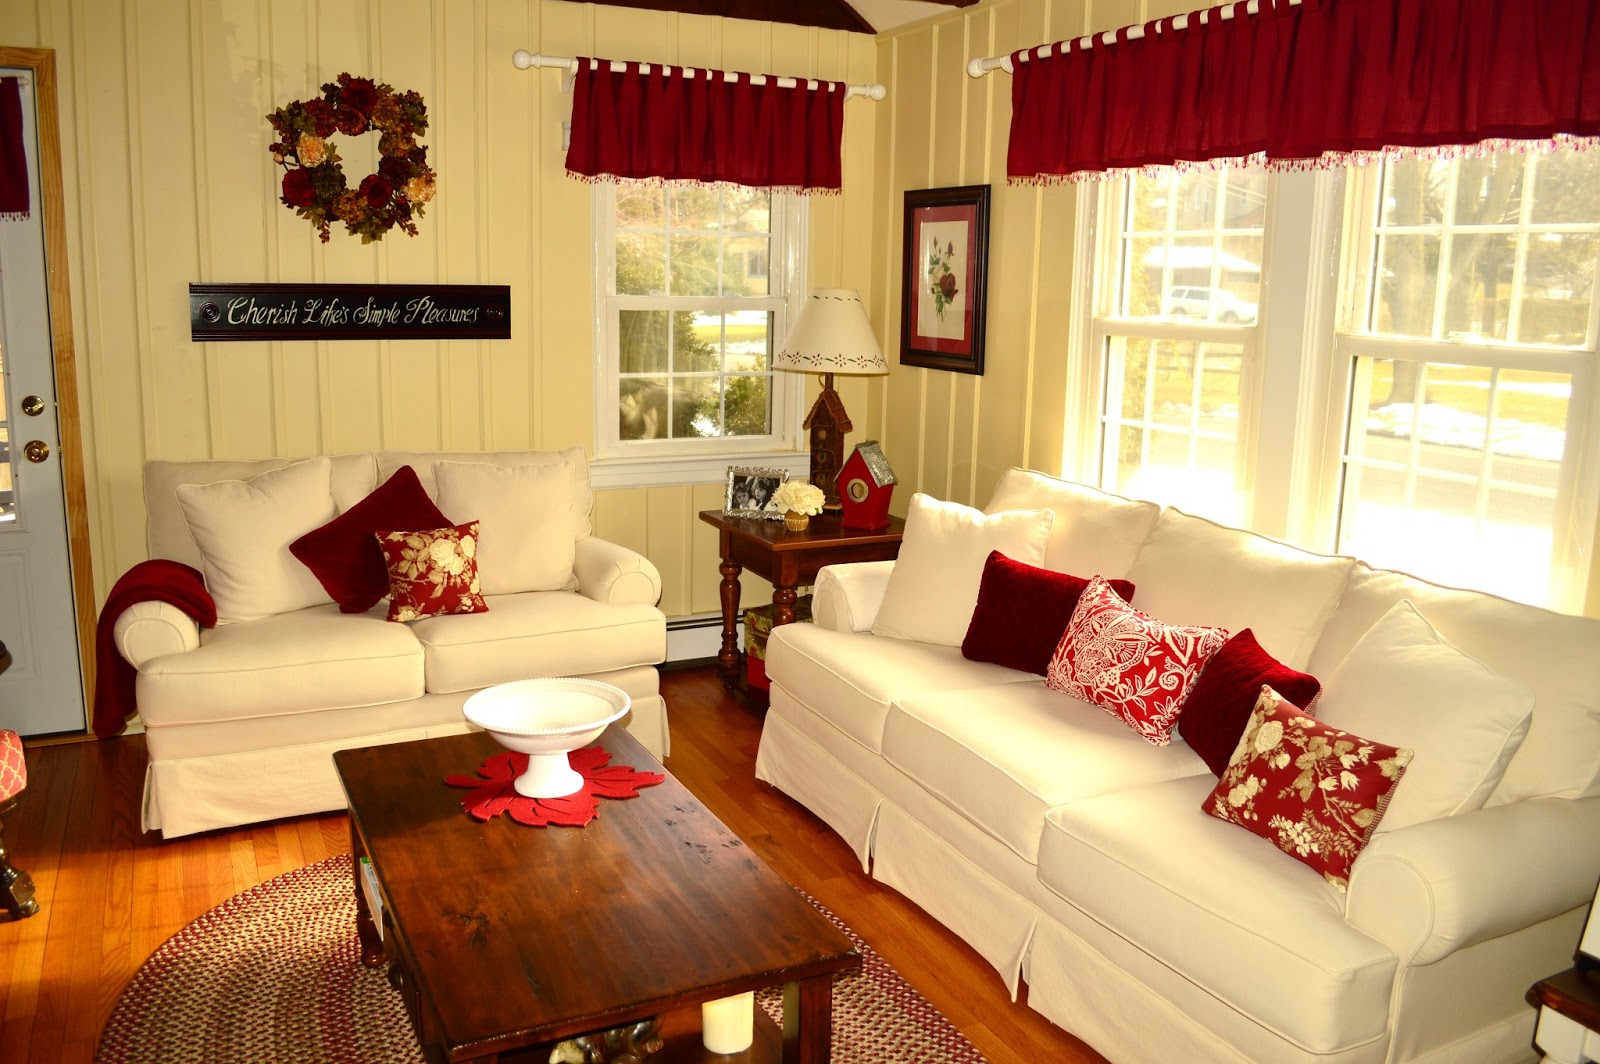 Decorating cheats embellishing store bought curtains exquisitely unremarkable for Do it yourself living room decor